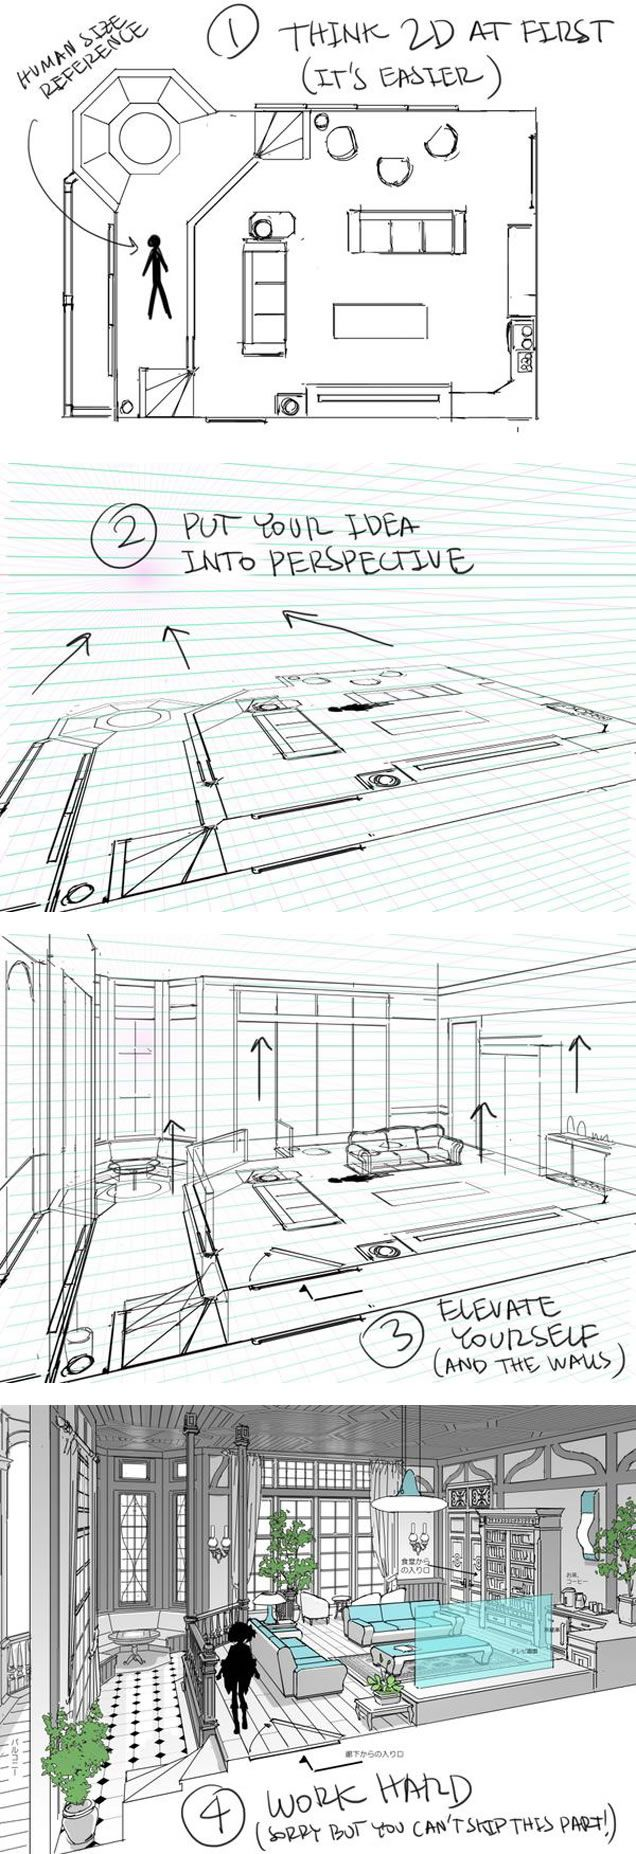 A helpful guide for building interiors - by Thomas Romain (one of the few foreigners working in the anime industry in Japan)